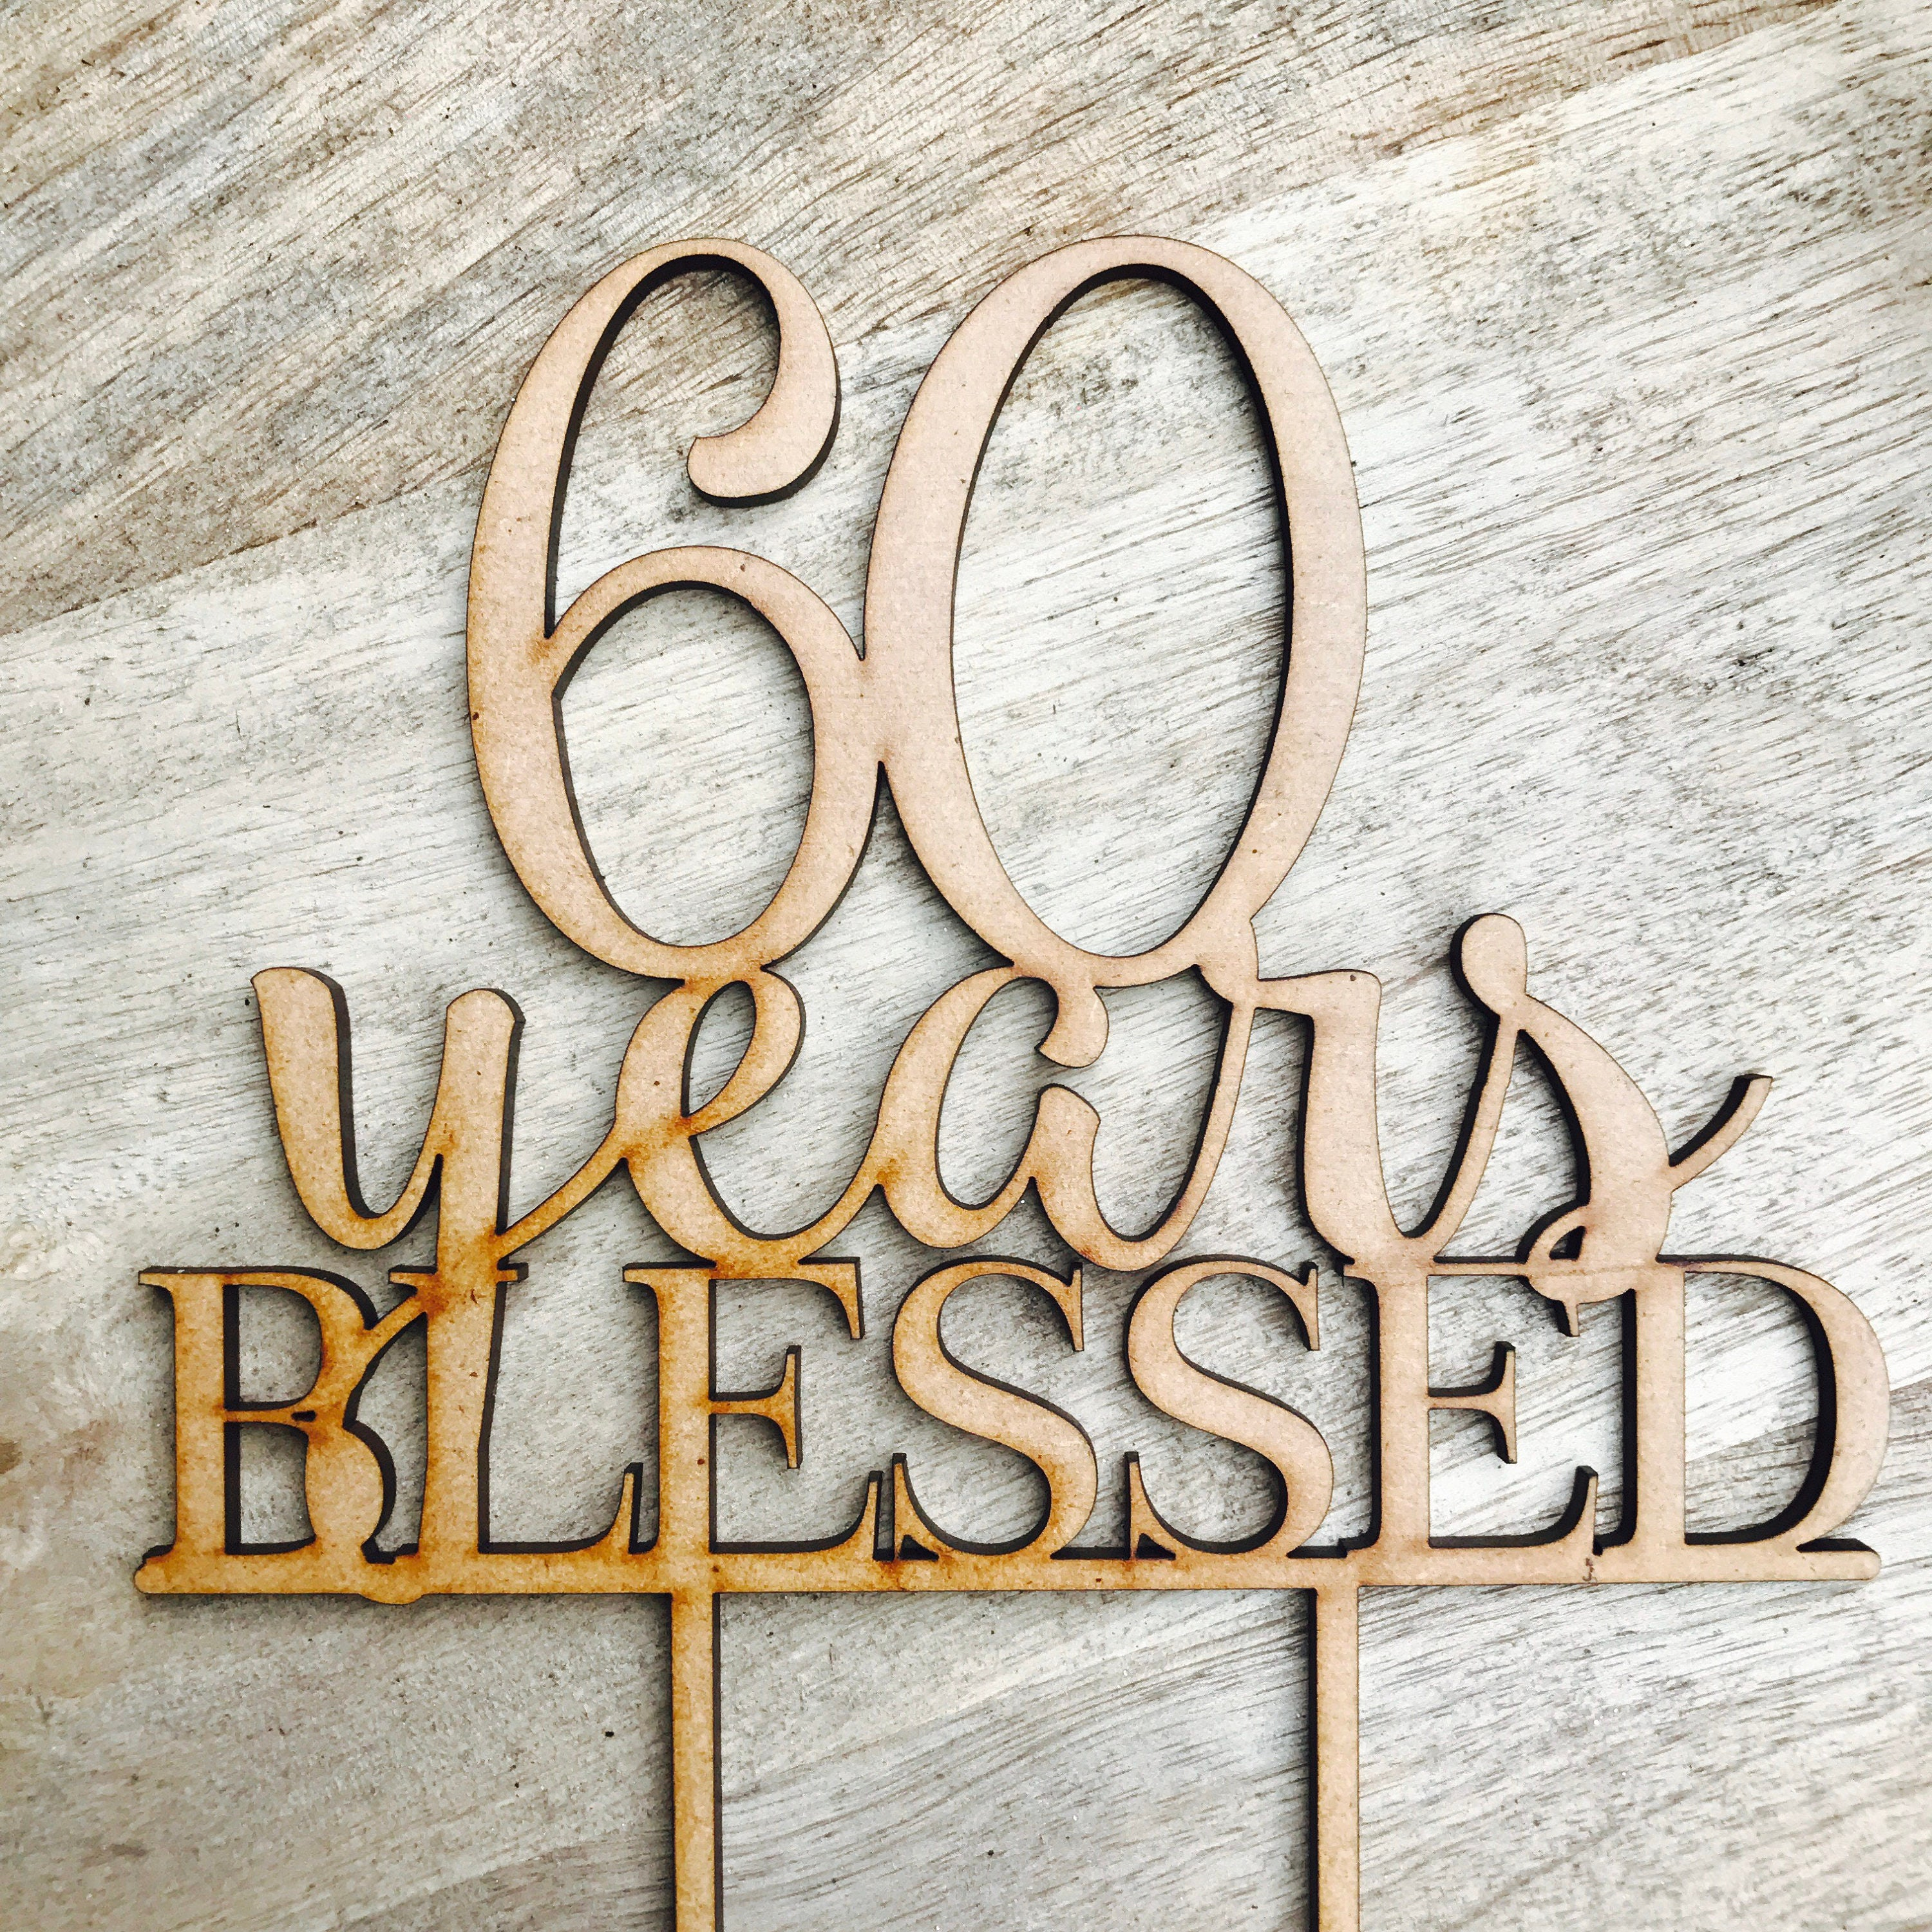 60 Years Blessed Cake Topper Anniversary Cake Topper Cake Decoration ...